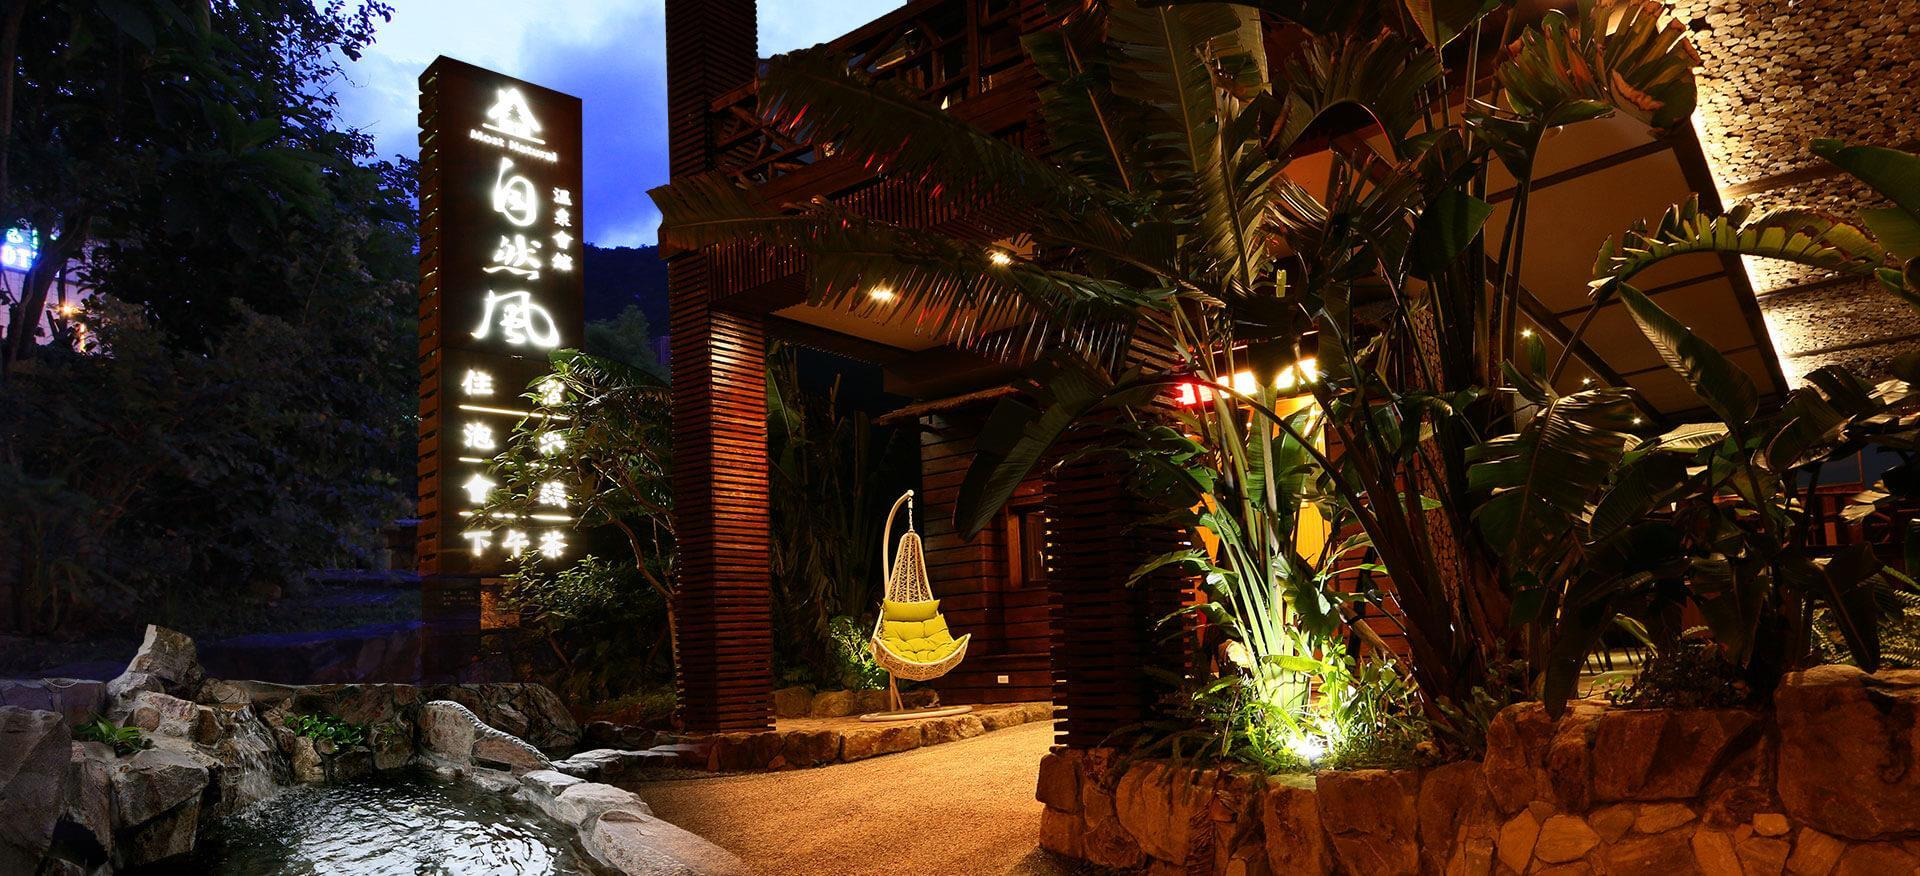 Most Natural Hotspring Hotel